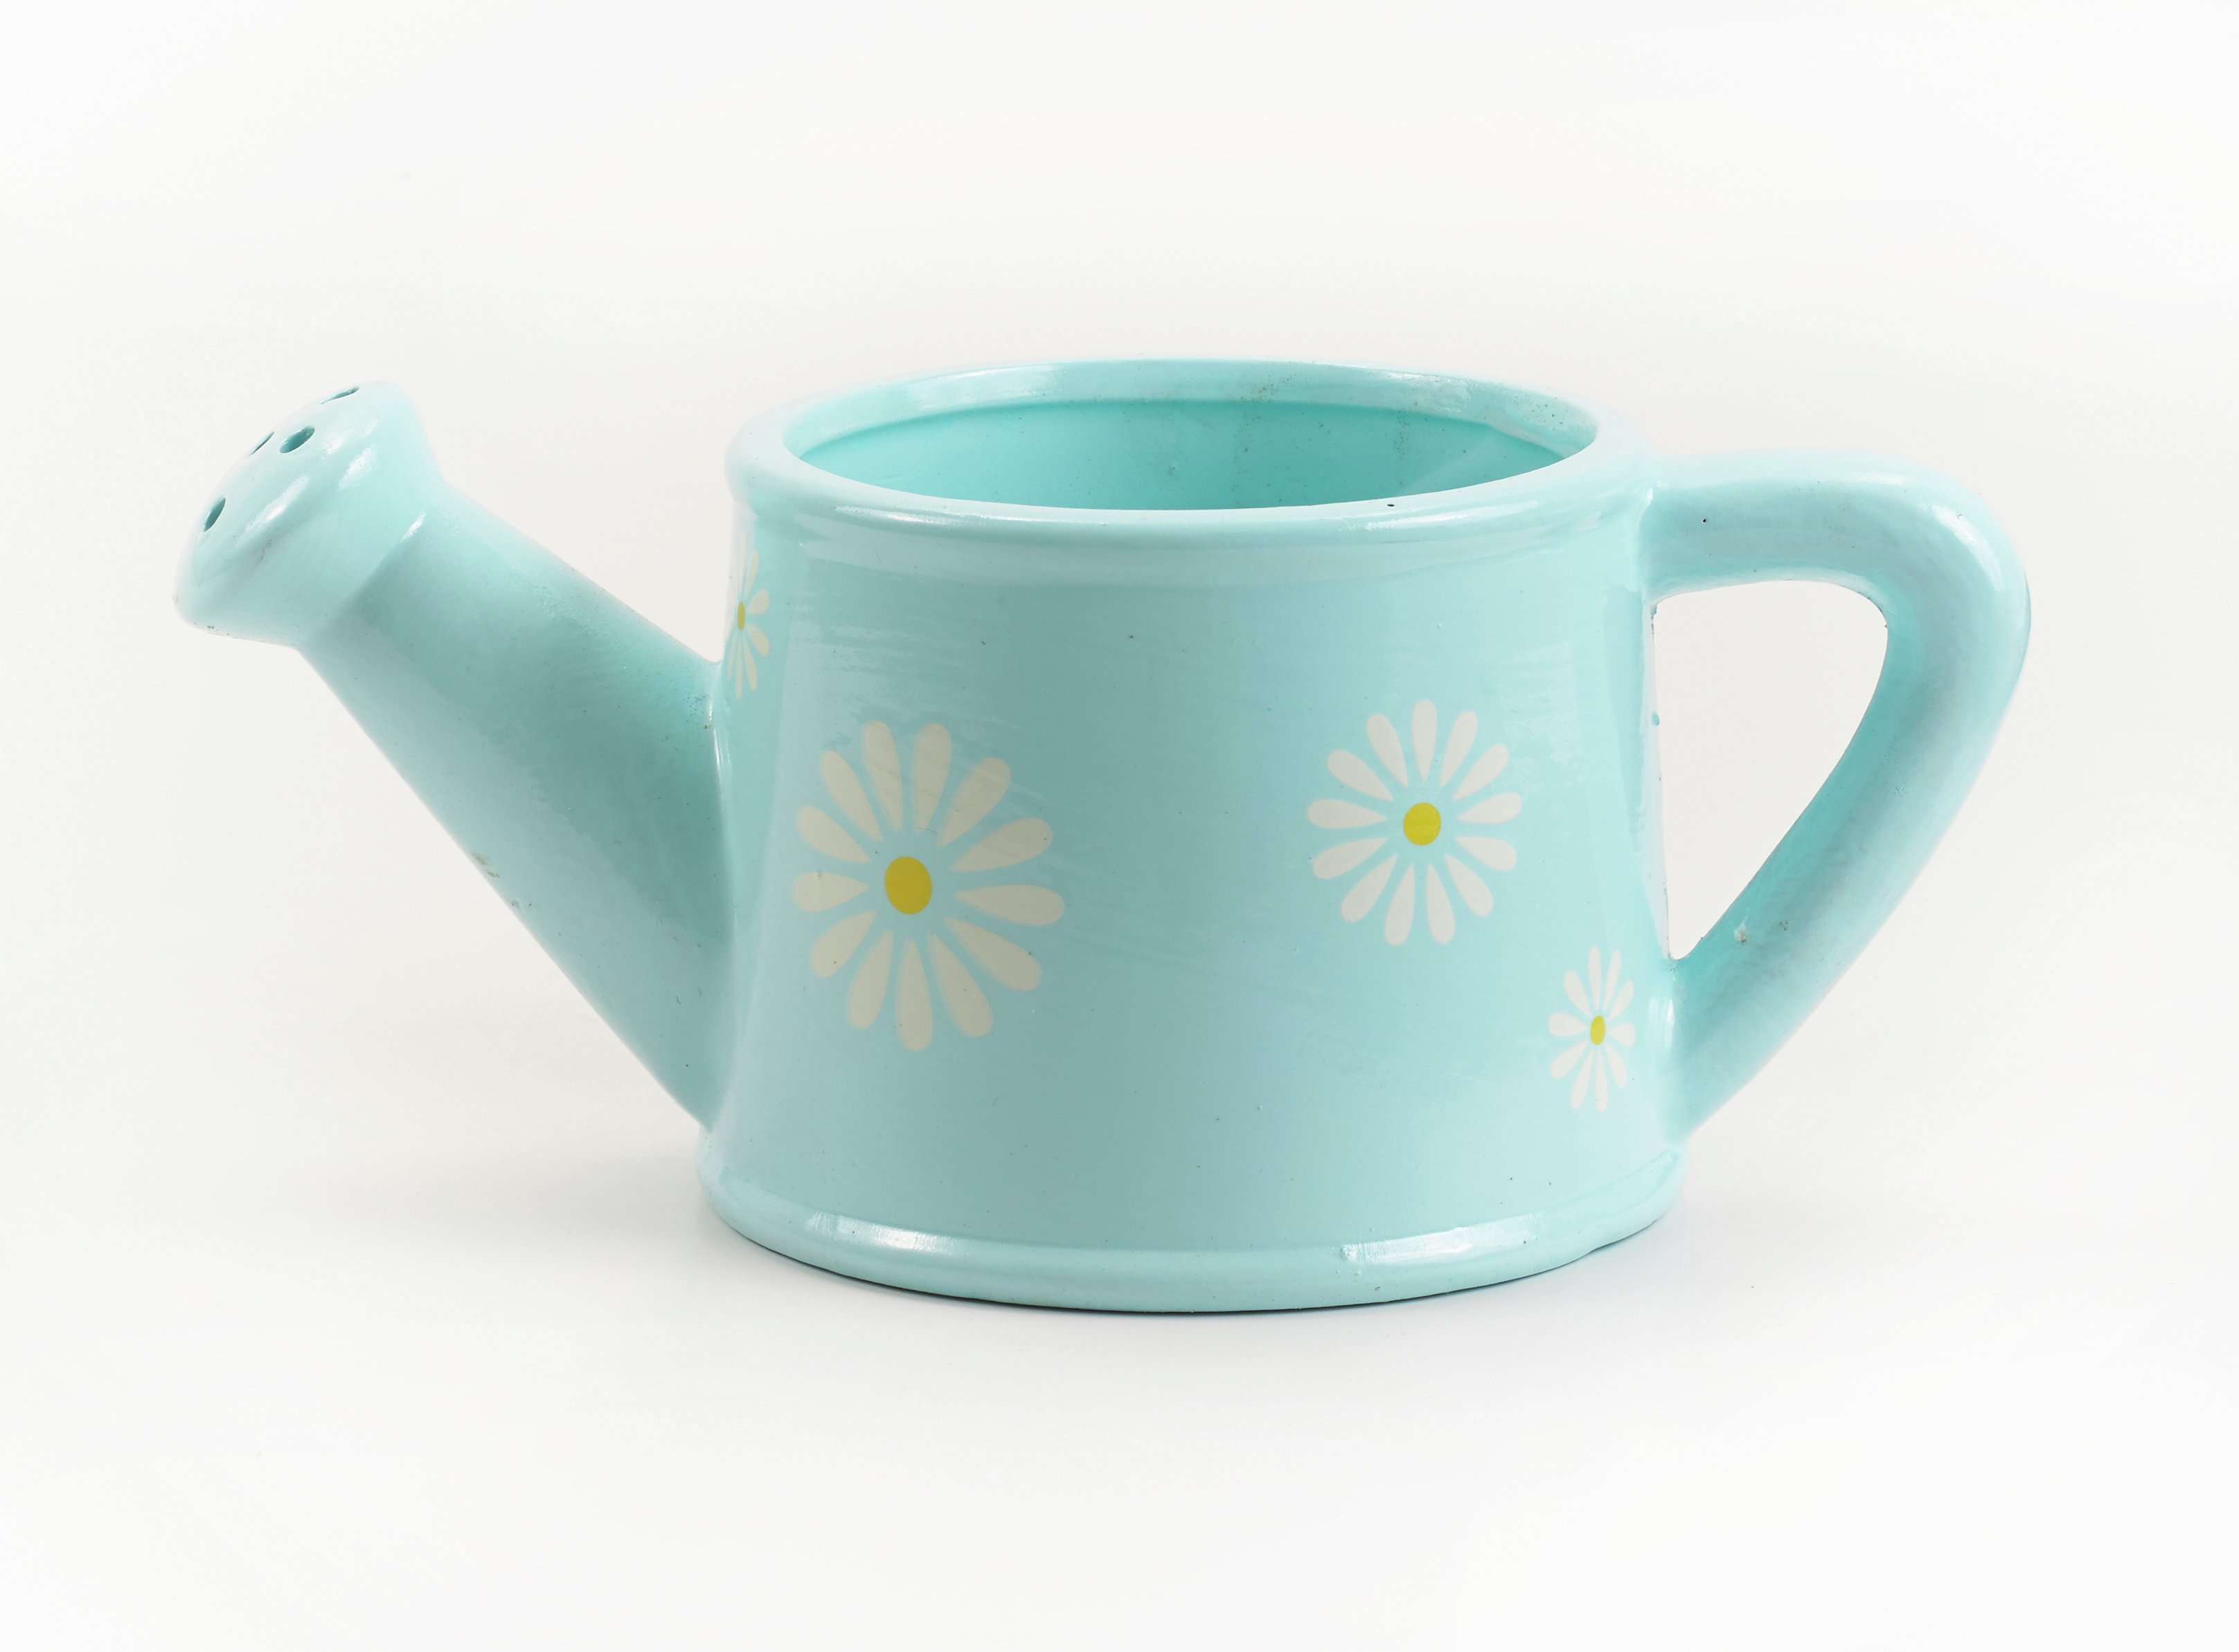 Ceramic - Daisy Watering Can - Garden Planter lowest price